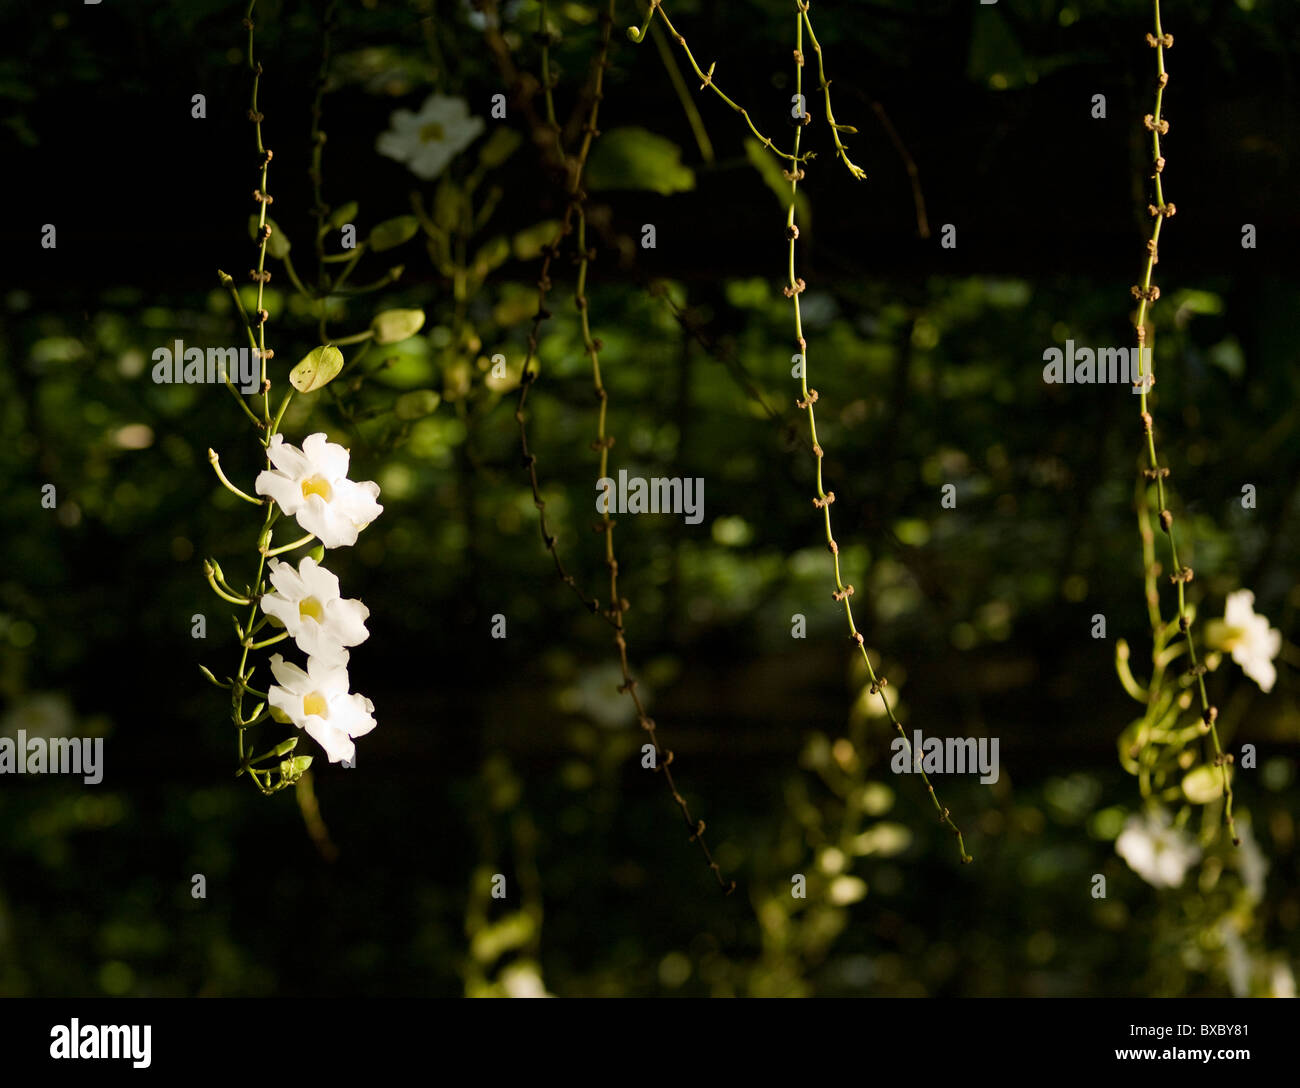 White flowers and vines in bali stock photo 33454289 alamy white flowers and vines in bali mightylinksfo